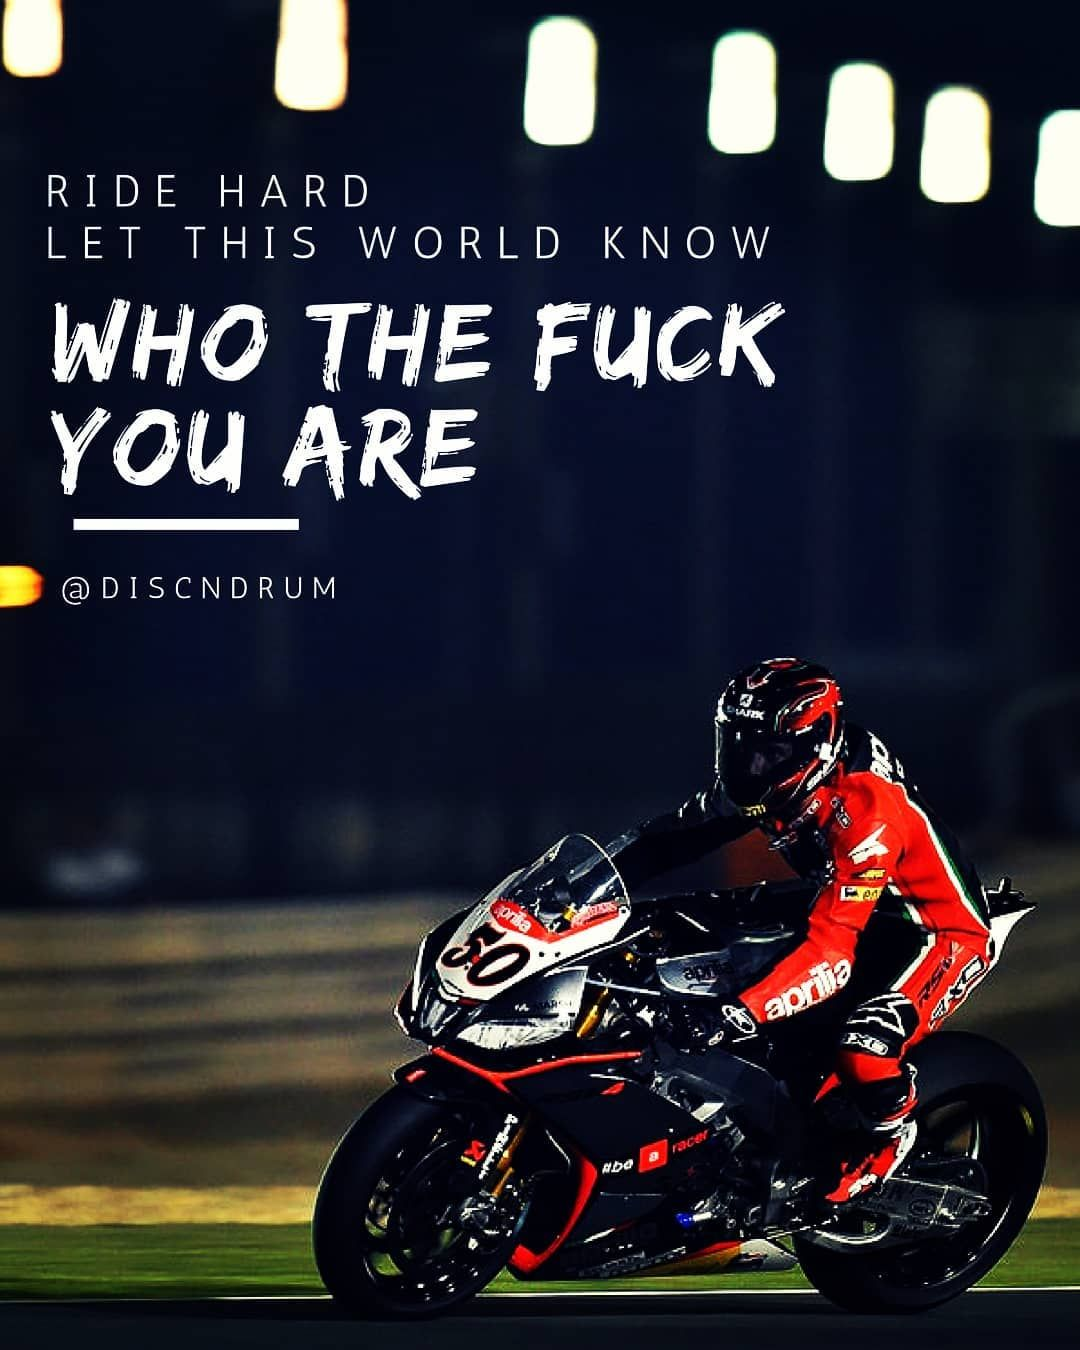 Yeah Discndrum Ride Racer Bike Superbike Quote Attitude Motivation Rider Red Biker Race Super Aweso Super Bikes Riding Bike Quotes